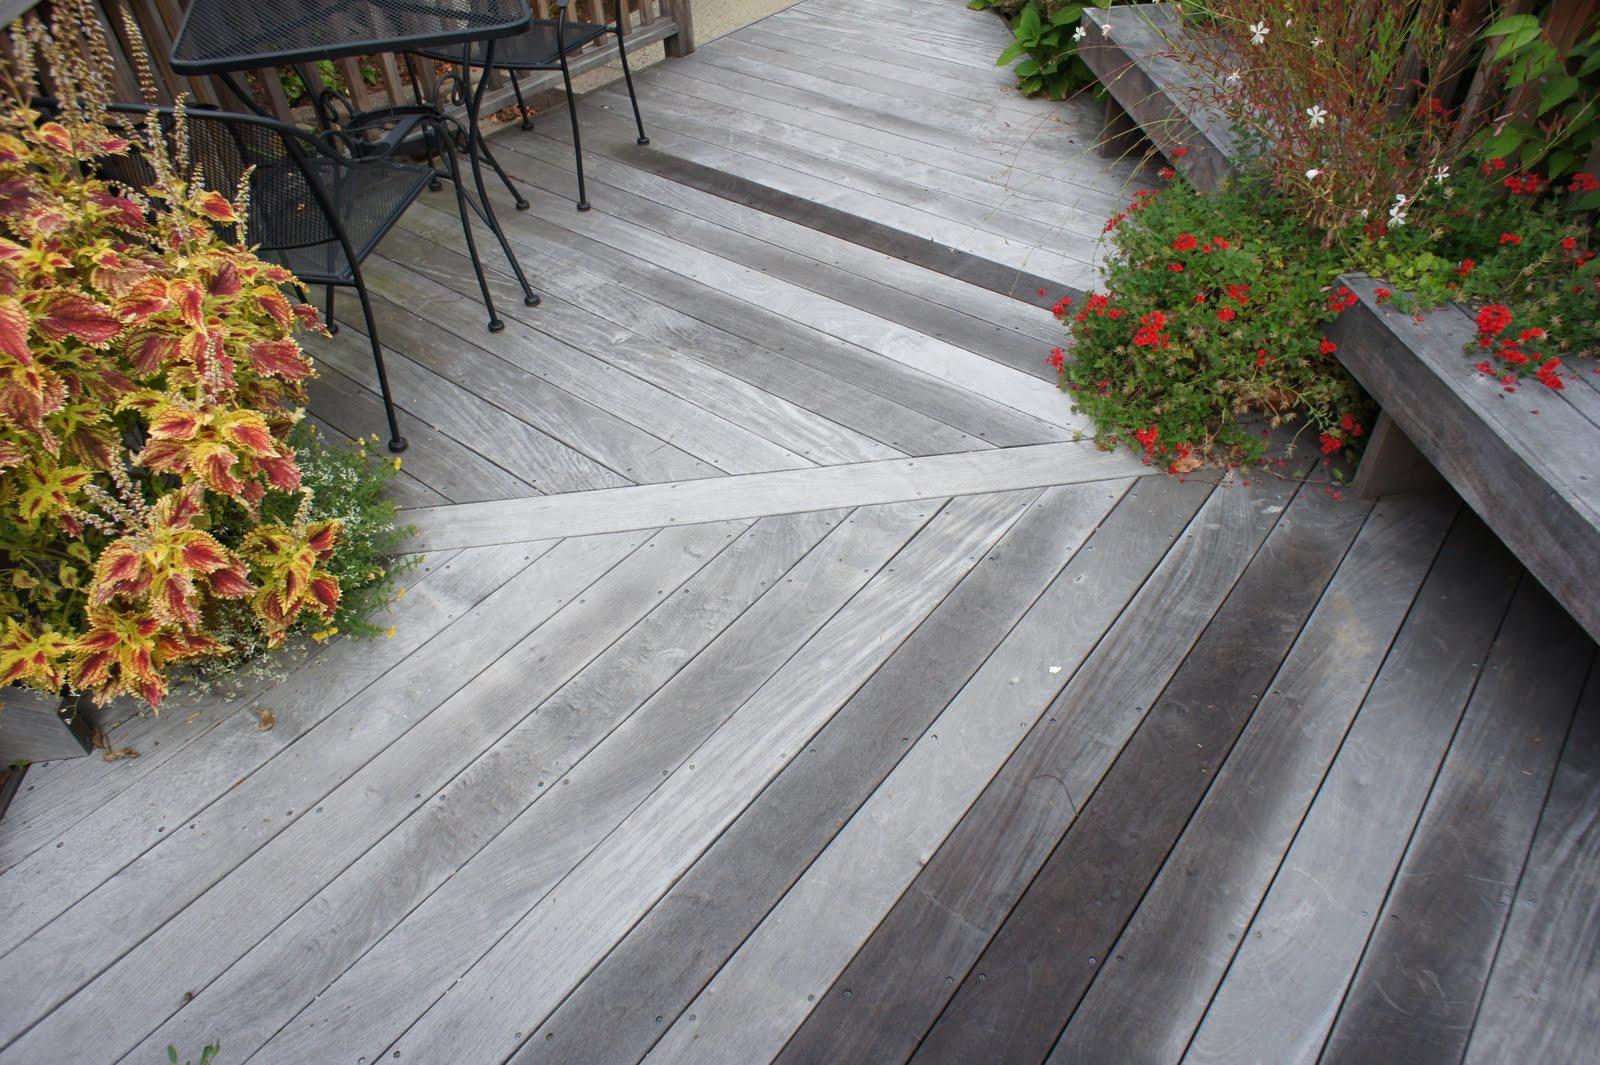 Best decking material for Best material for deck